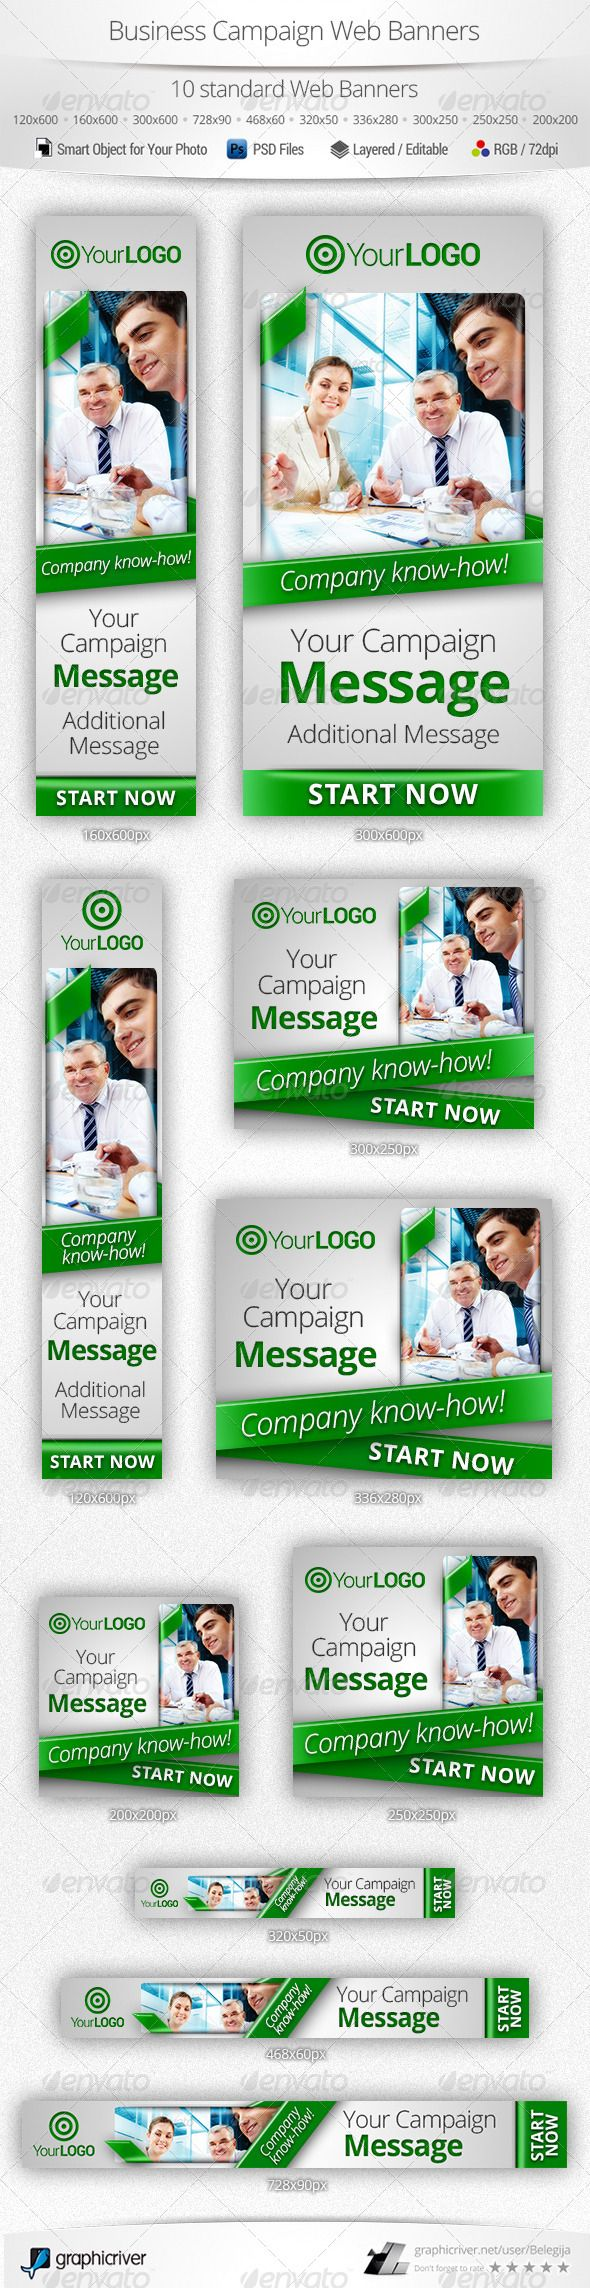 Business Campaign Web Banners Template PSD | Buy and Download: http://graphicriver.net/item/business-campaign-web-banners/5744153?WT.ac=category_thumb&WT.z_author=Belegija&ref=ksioks